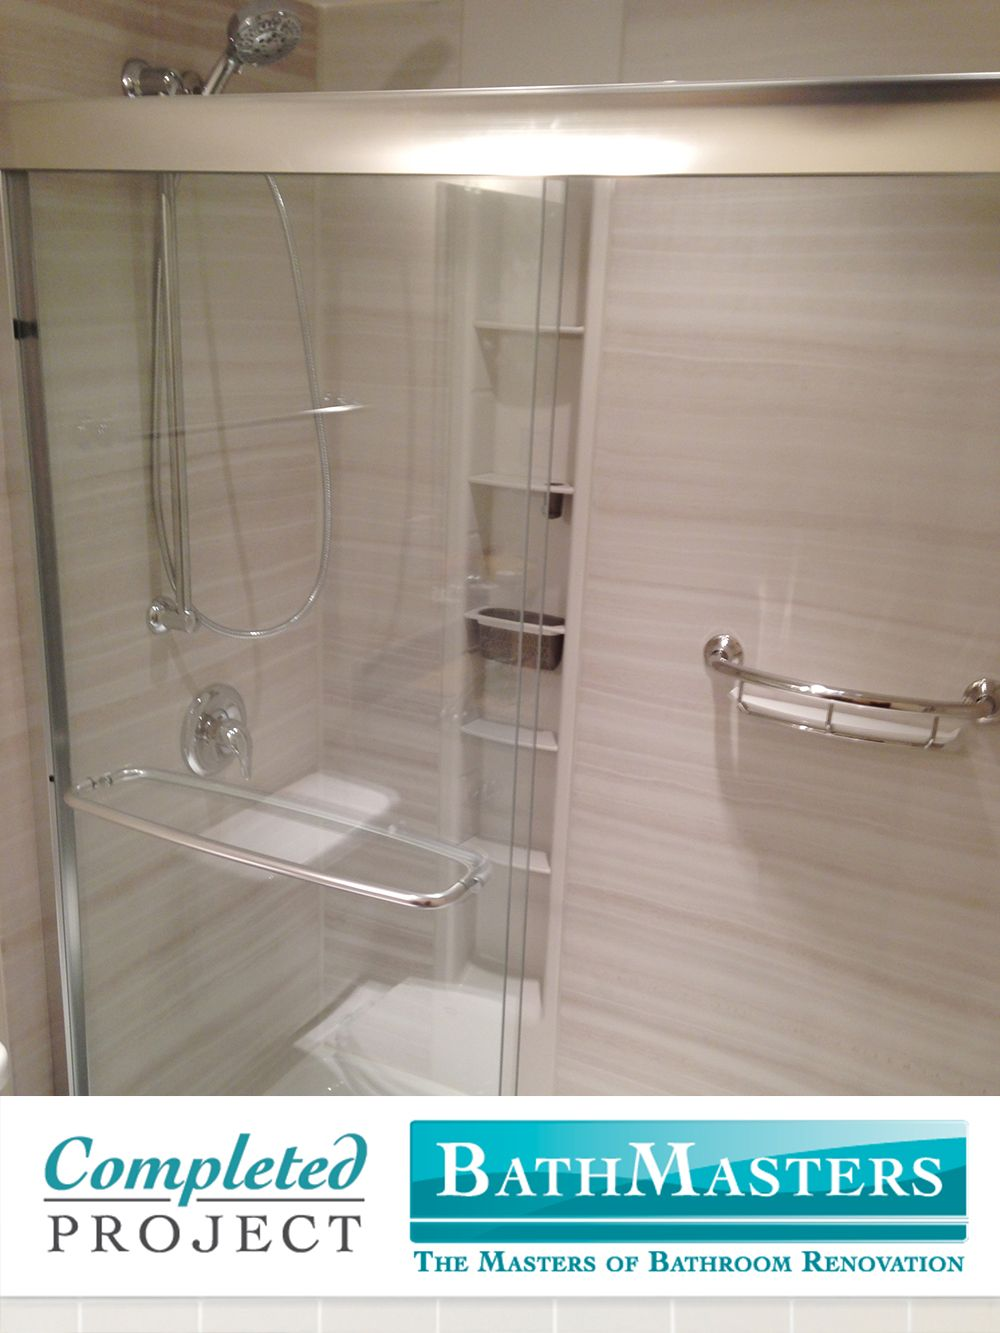 This Shower Was Renovated With The Kohler Choreograph